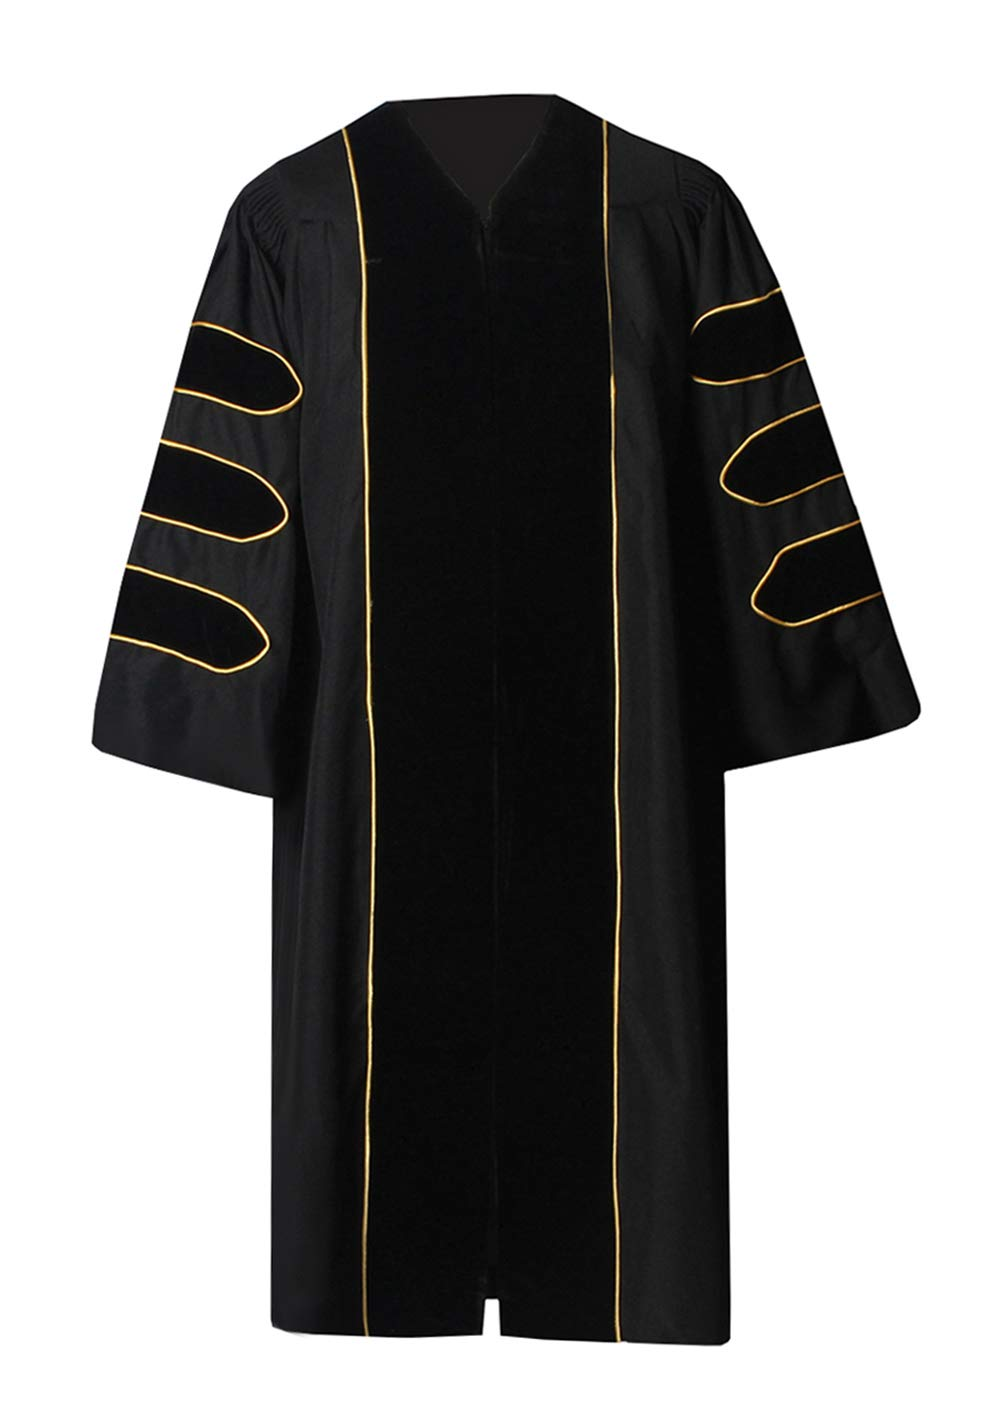 GraduationForYou Unisex Deluxe Doctoral Gown with Gold Piping and Doctoral 8-Side Tam Package,Customized Acceptable